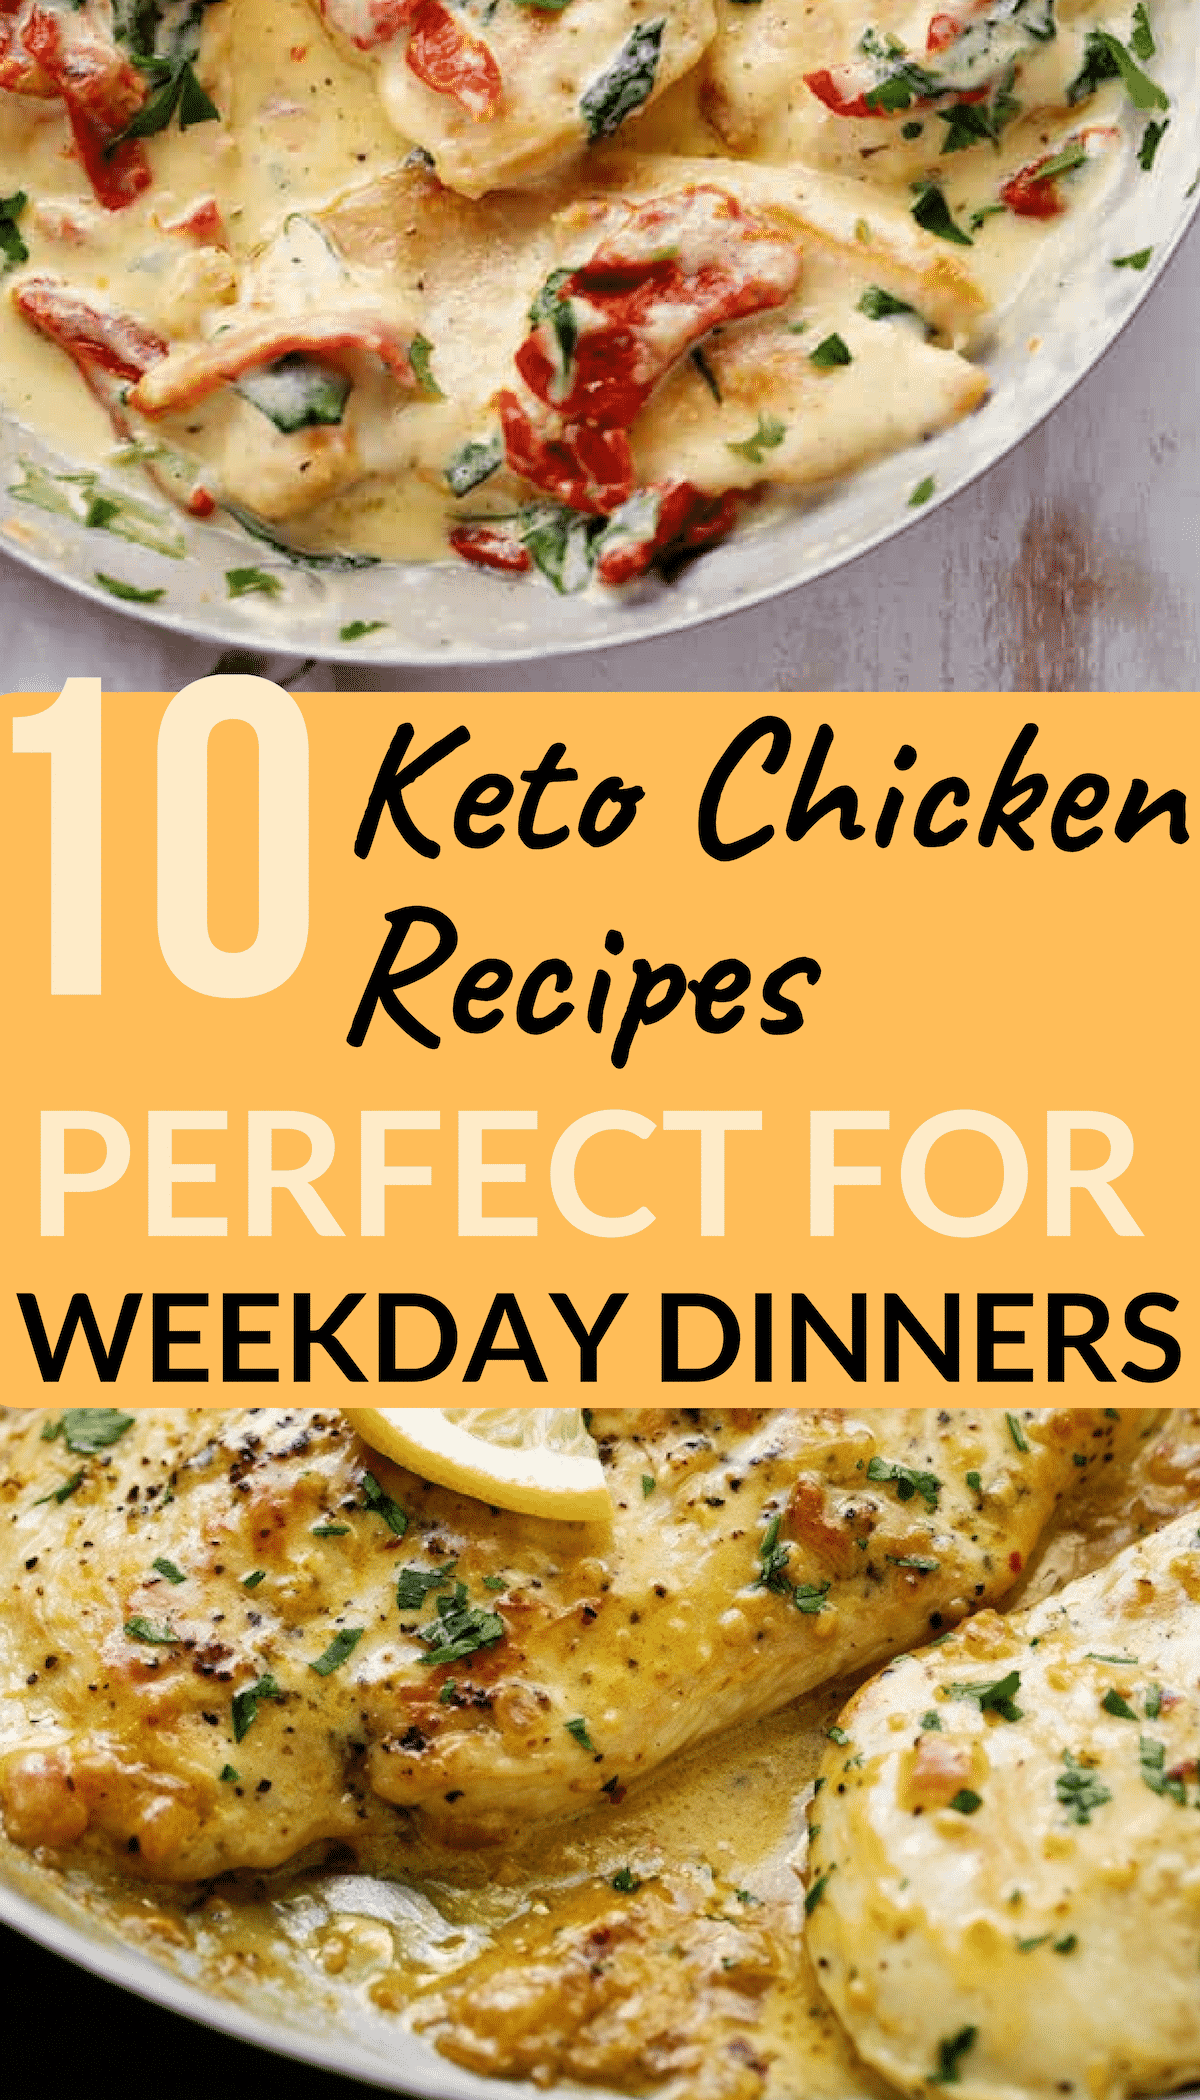 Keto Chicken Recipes Perfect for Weekday Dinners